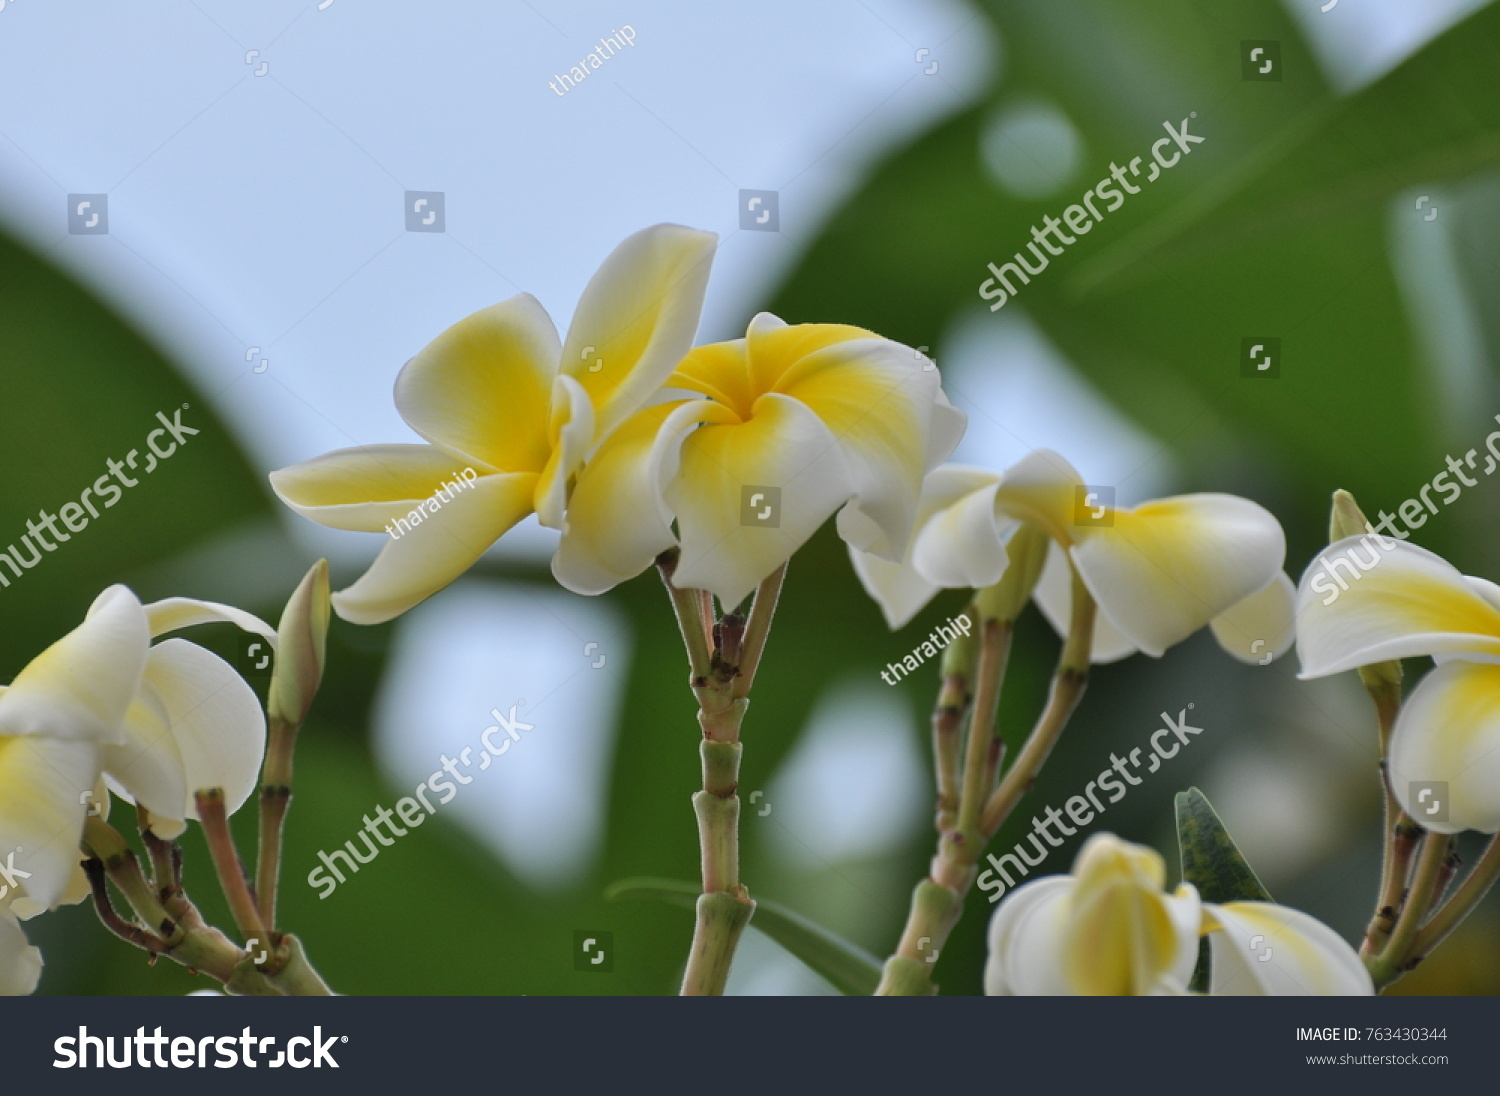 Beautiful Yellow And White Flowers With Branches And Green Leaves